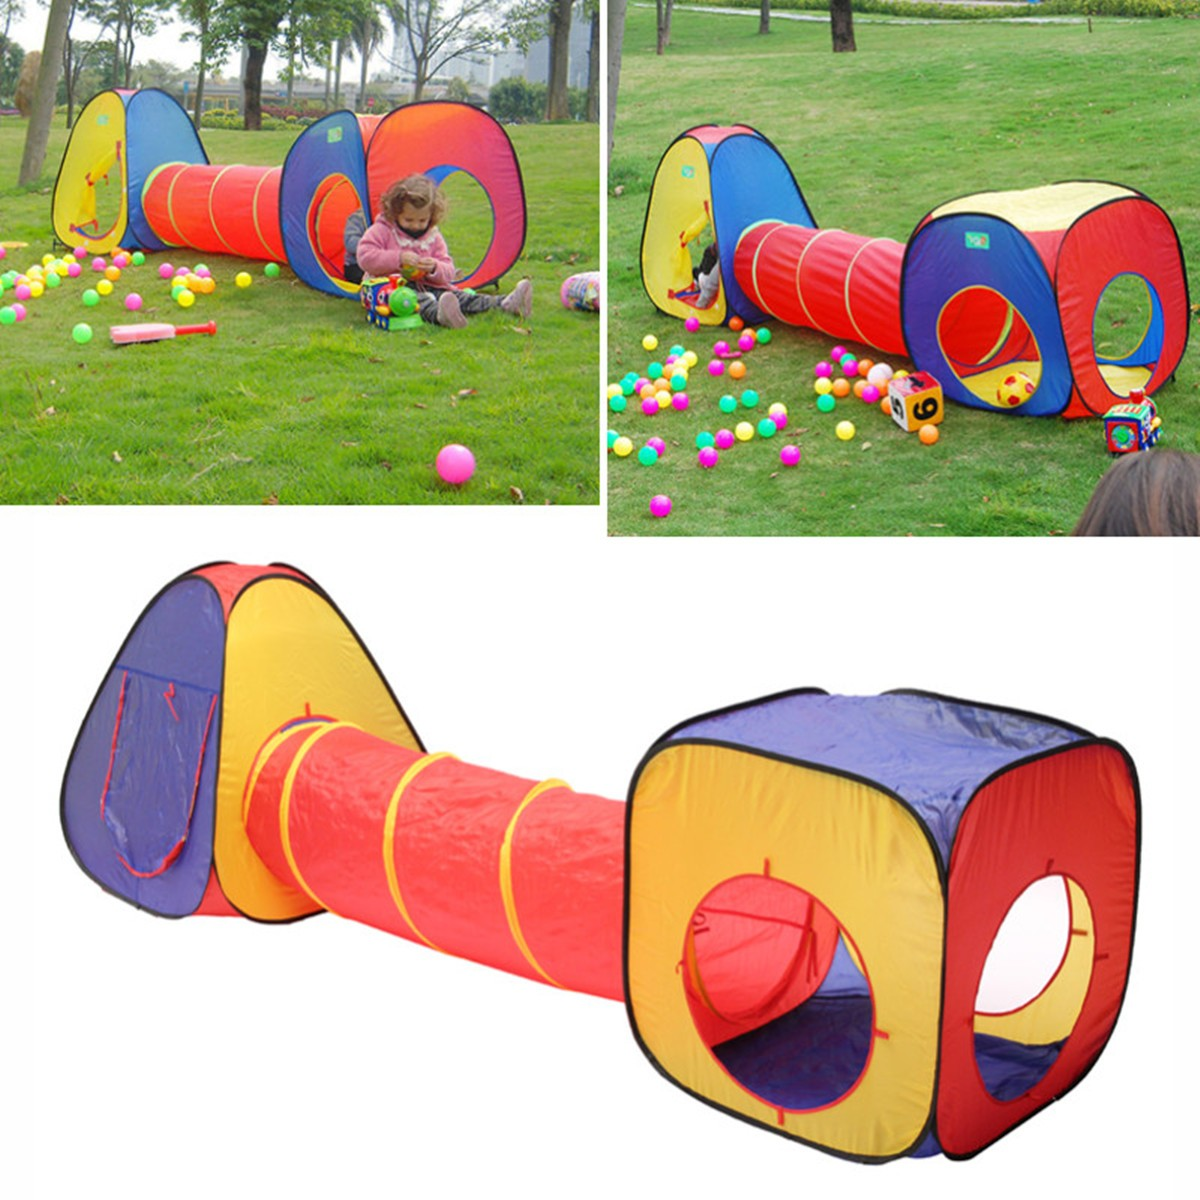 Portable Toys Tunnel Tent Pit Bal Pool Kids Tent Playhouse Children Ocean Play House Outdoor Sports Educational Toy hand throwing kids mini play parachute toy soldier outdoor sports children s educational toys free shipping